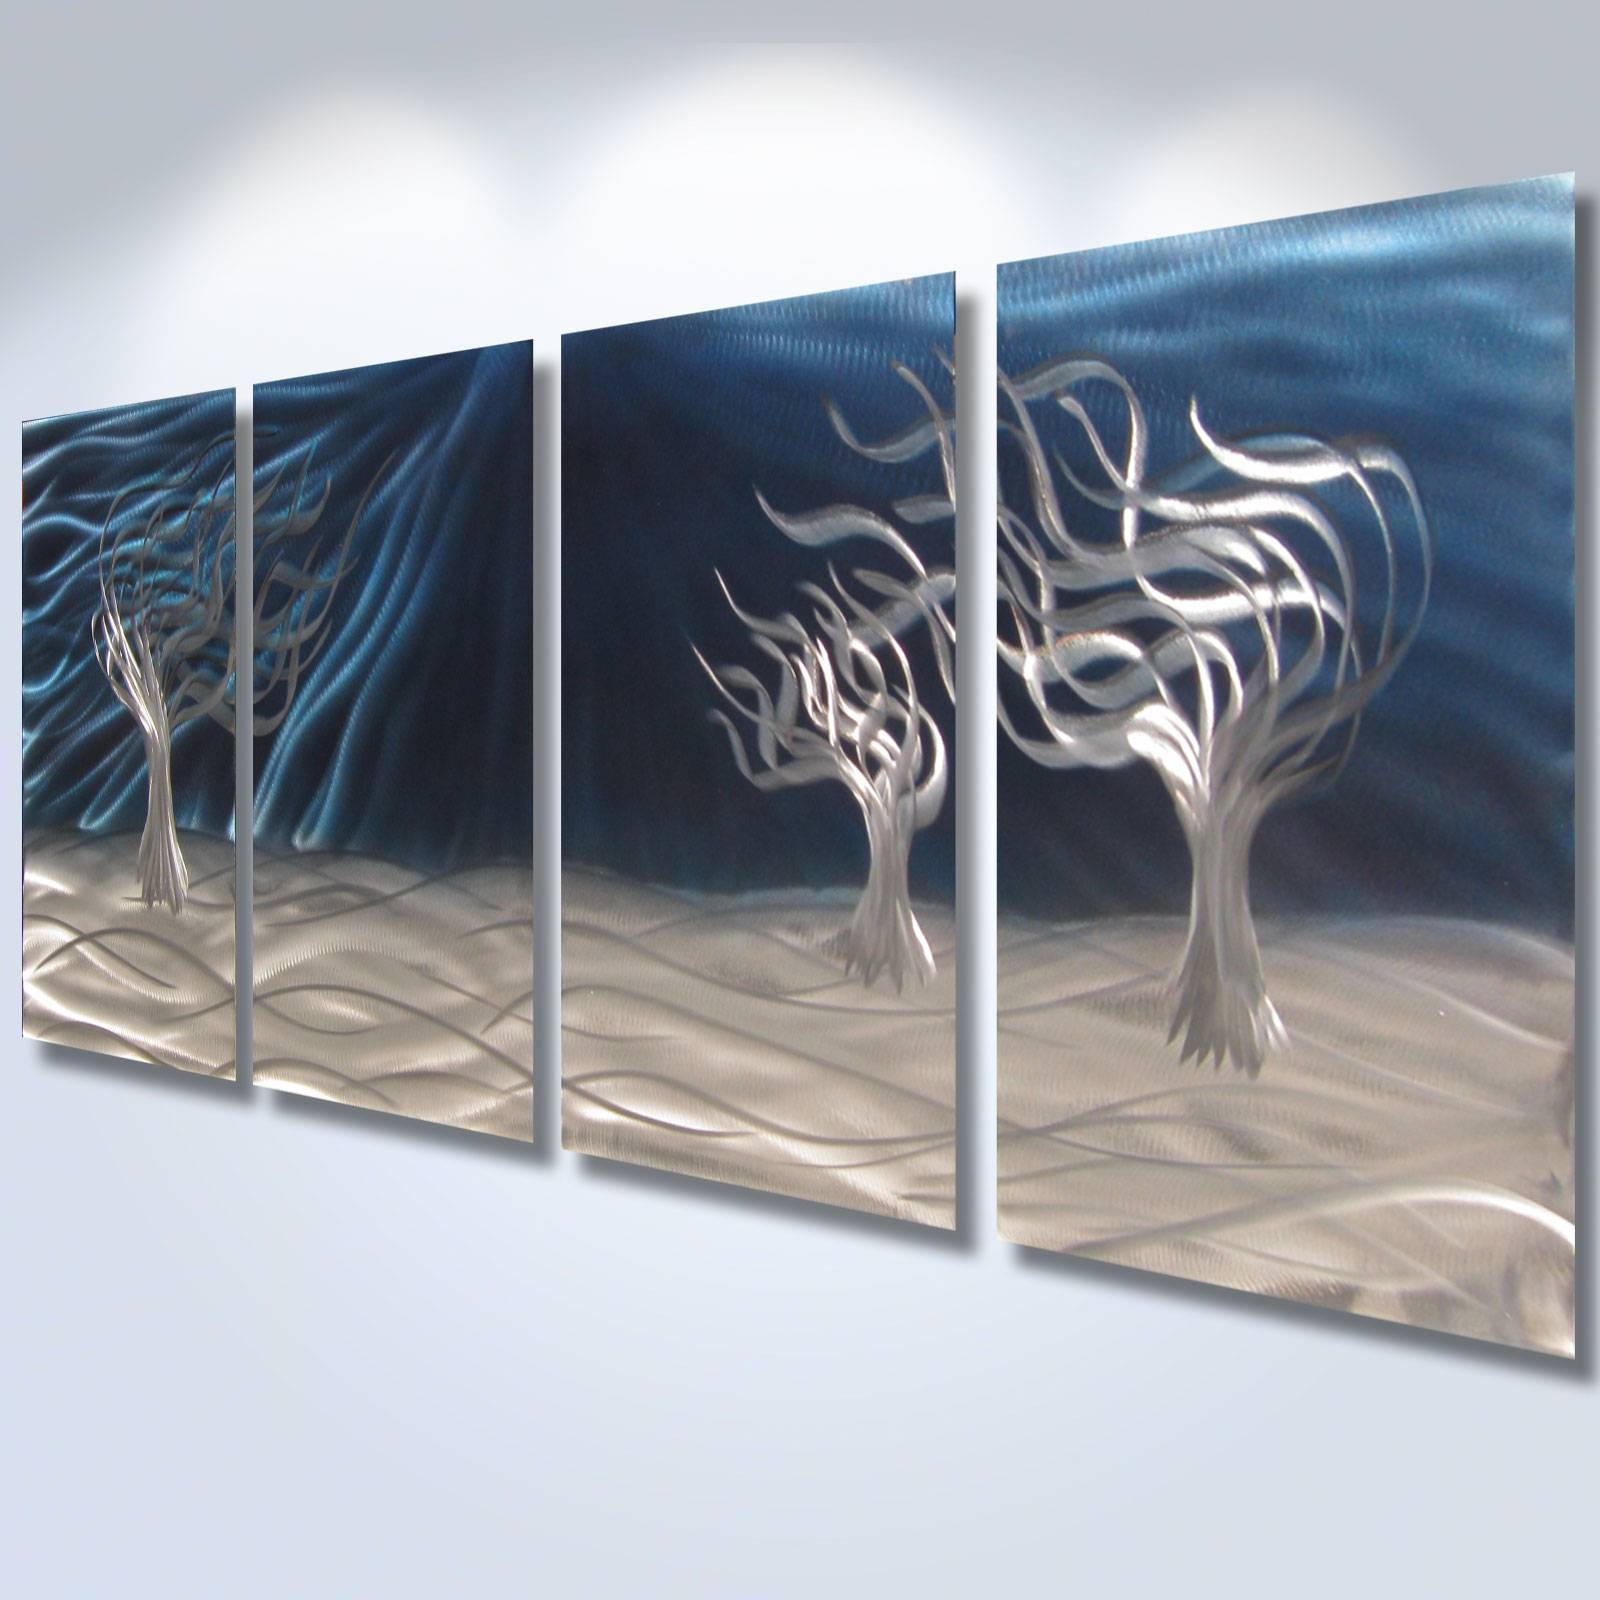 3 Trees Blue – Abstract Metal Wall Art Contemporary Modern Decor Regarding Current Modern Metal Wall Art (View 8 of 20)